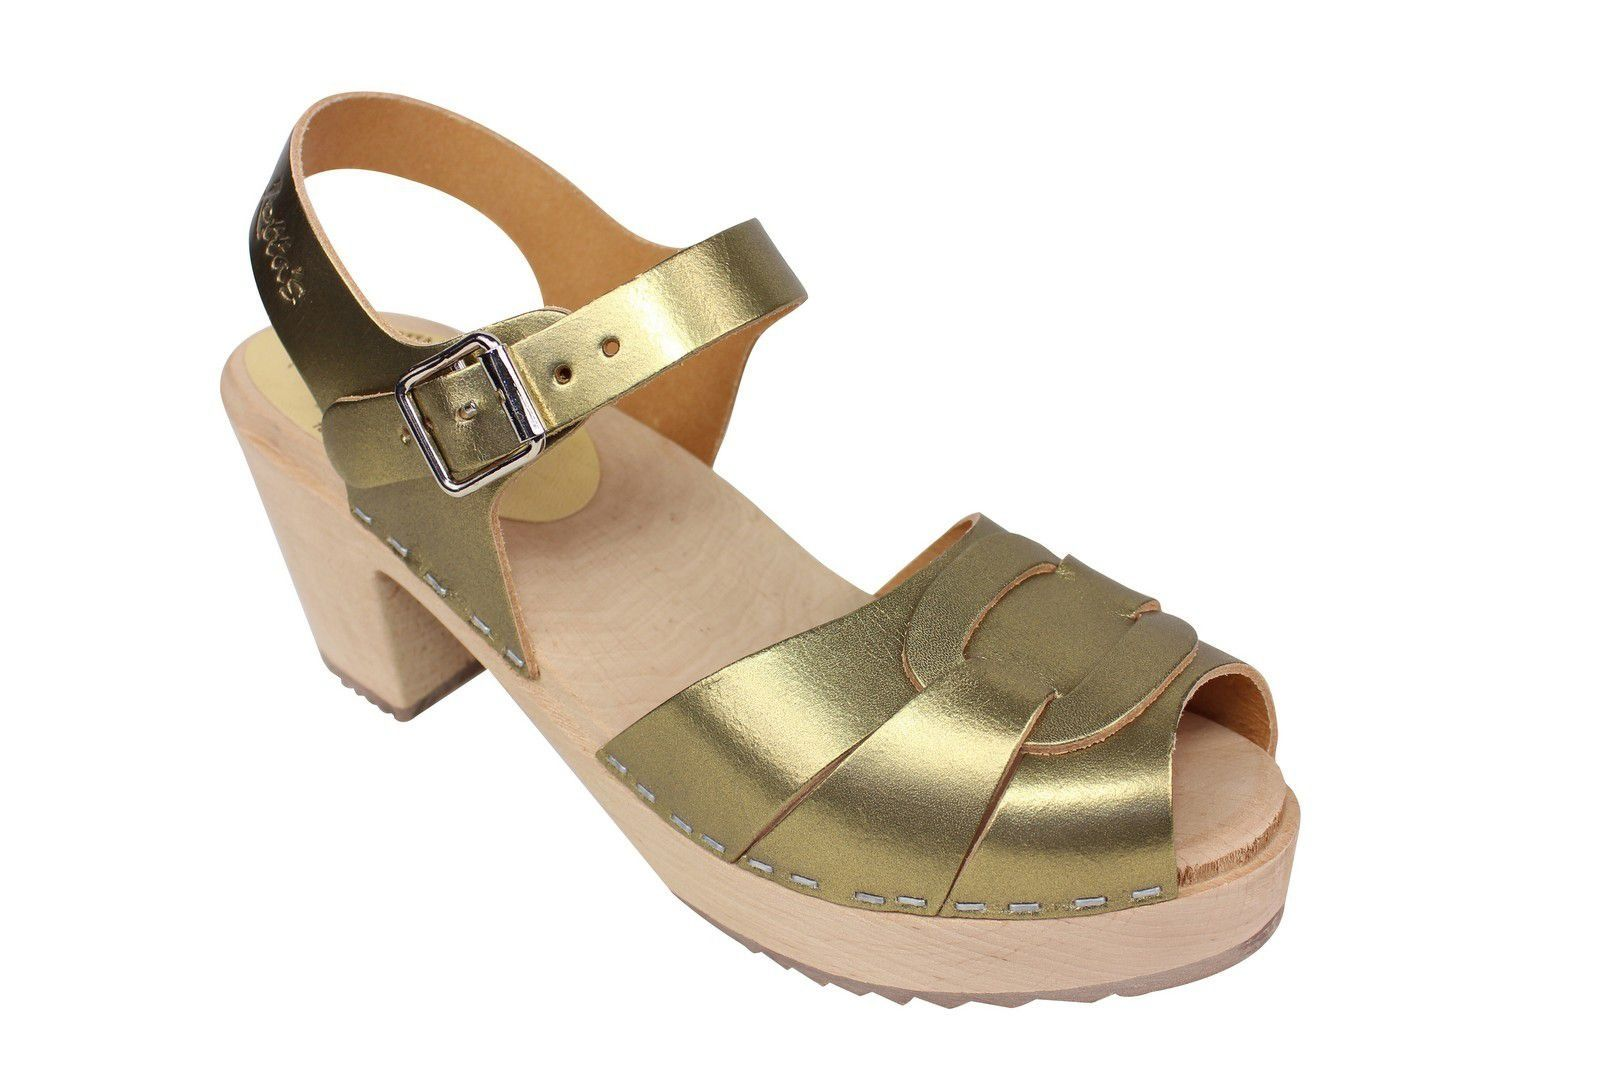 Lotta from Stockholm Peep Toe Antique Gold Seconds